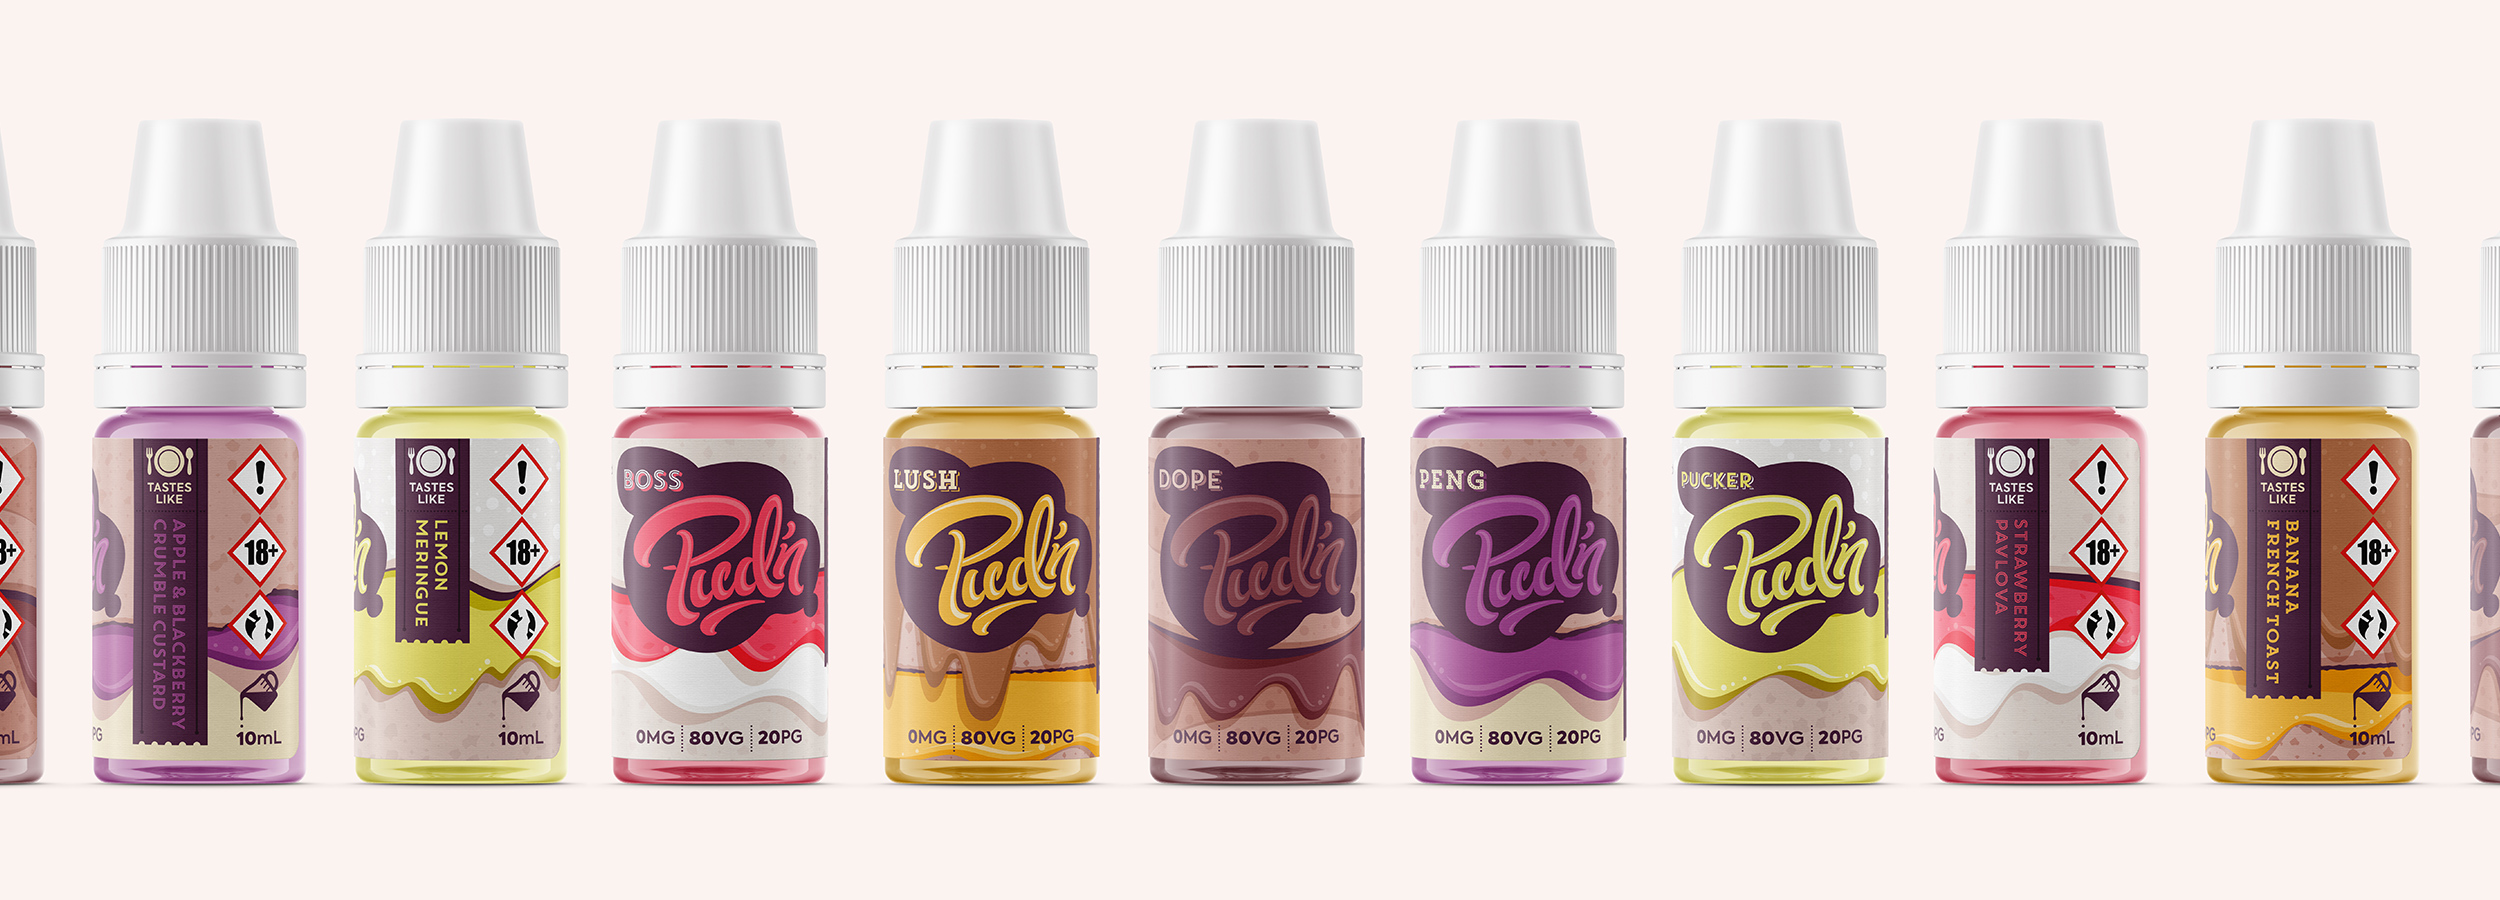 Pud'n by Shoreditch – E-liquid branding & packaging